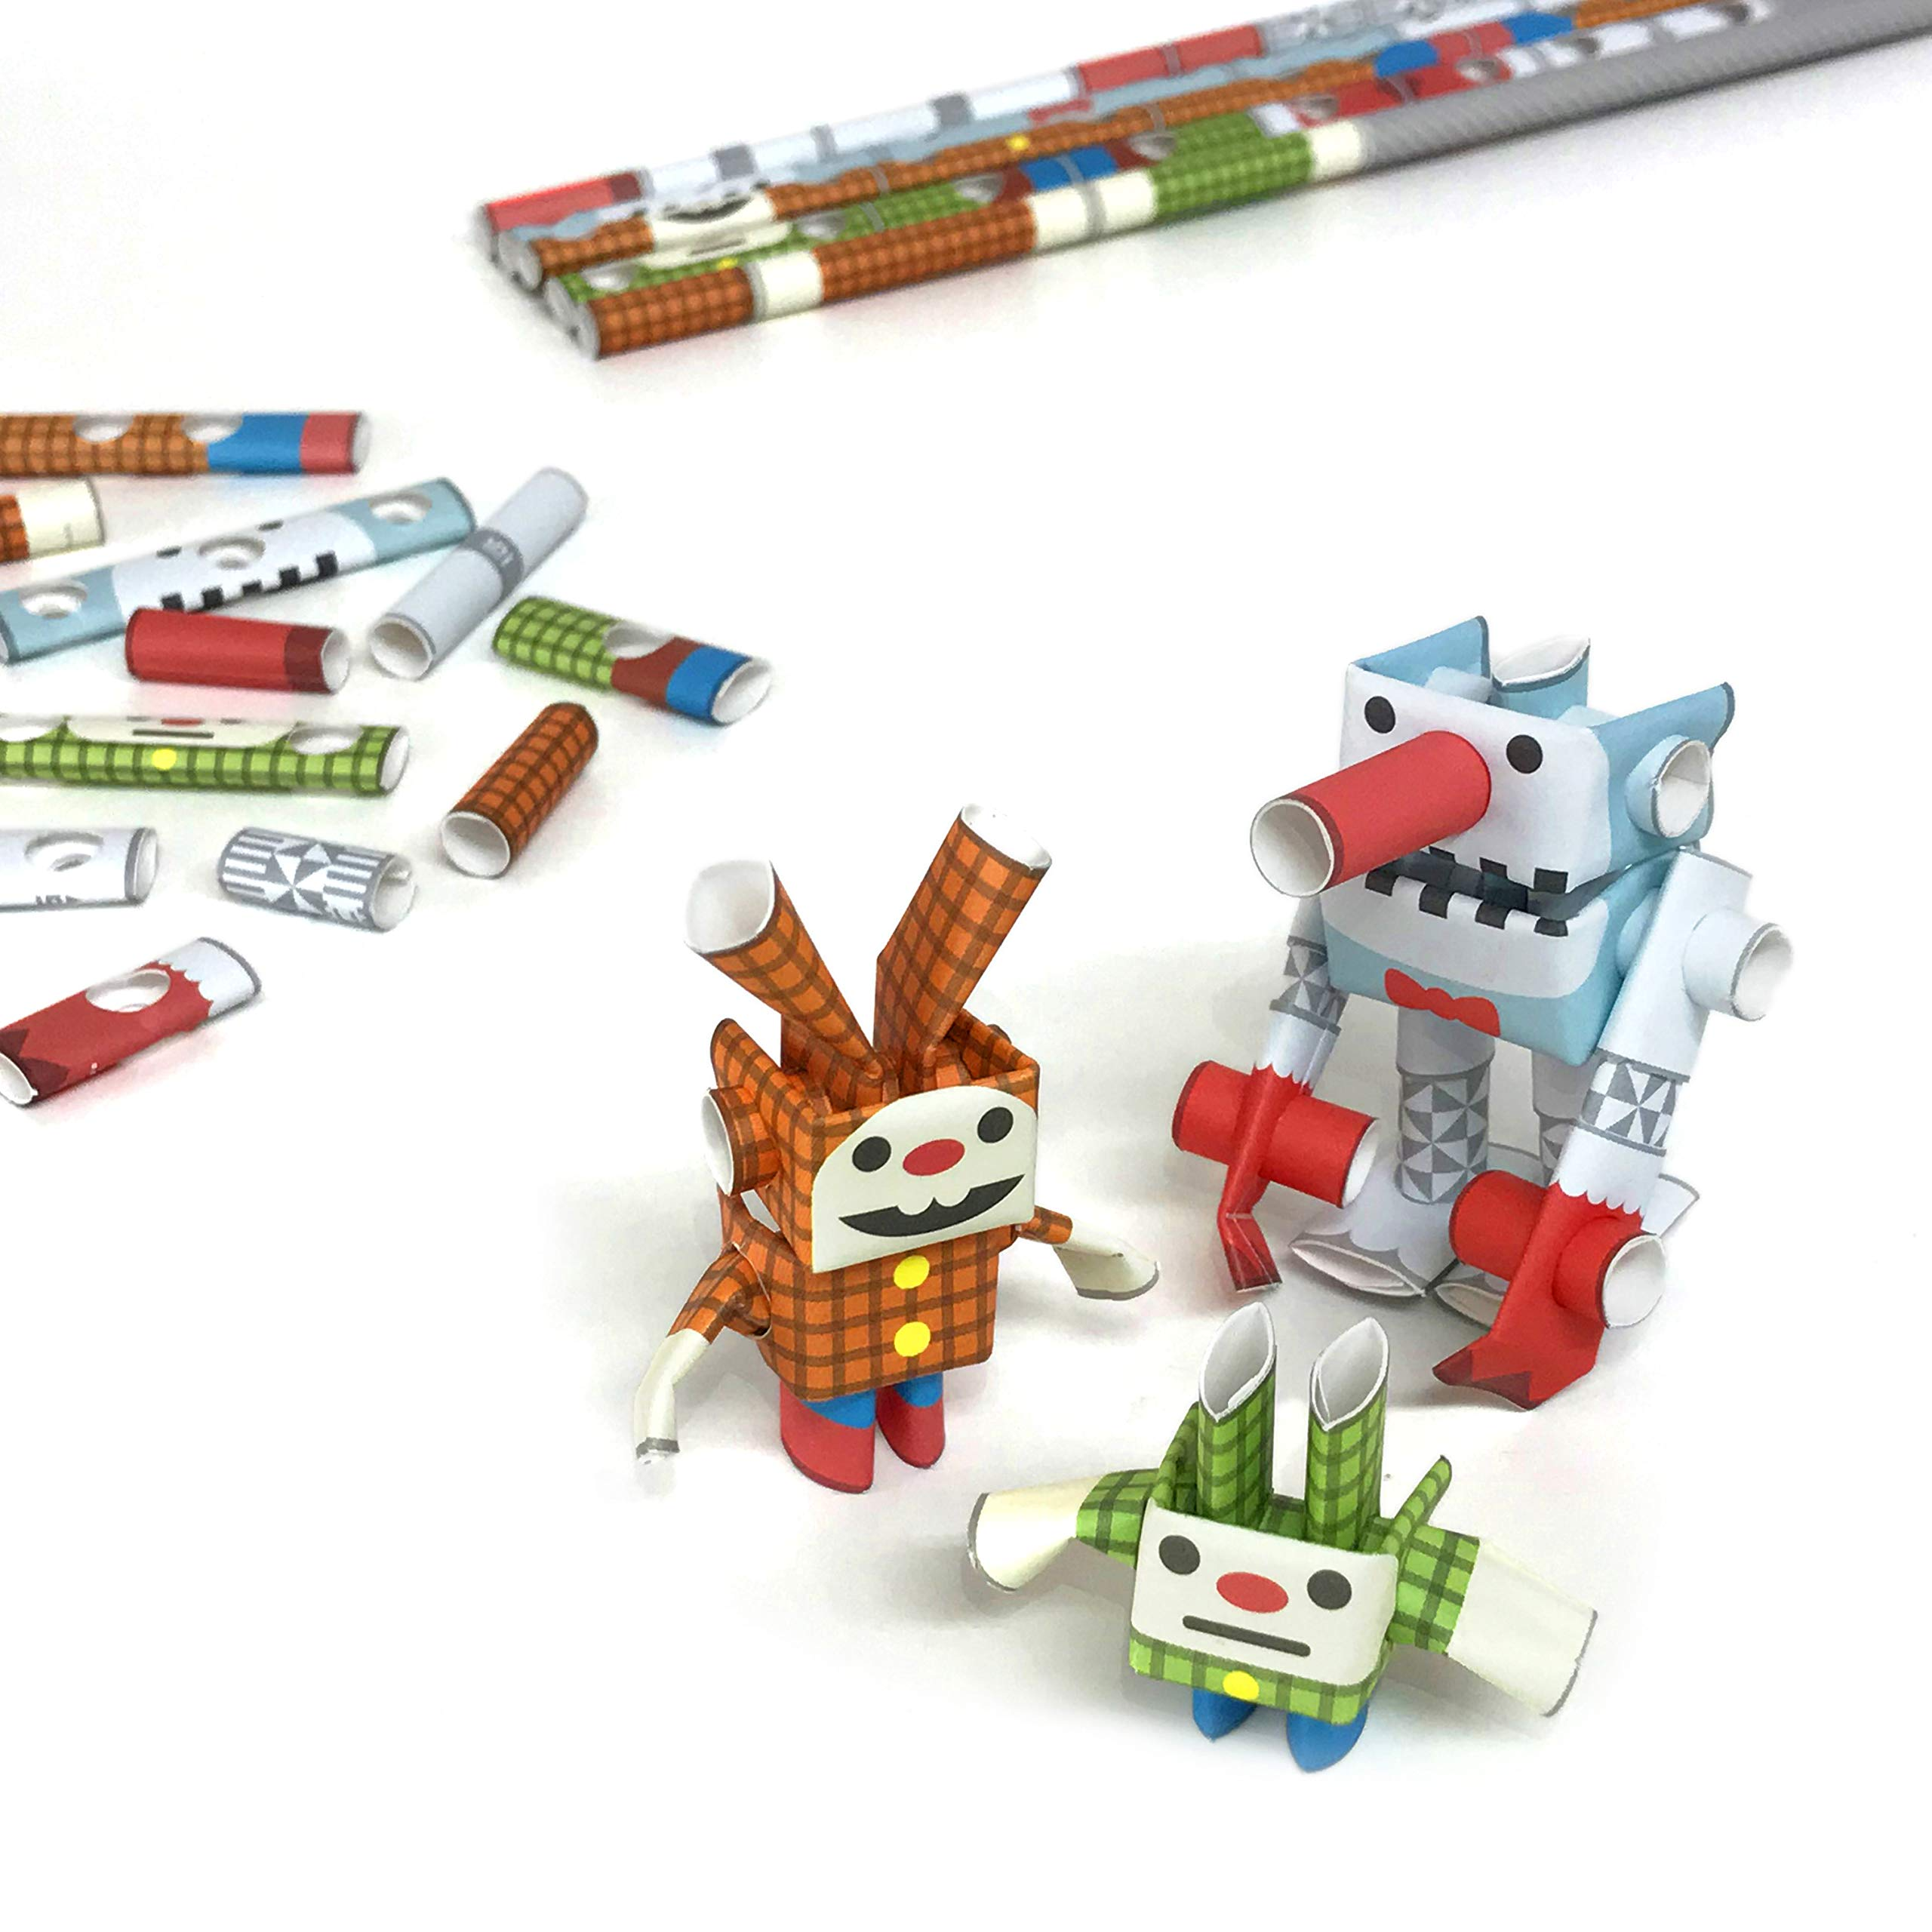 PIPEROID DIY Paper Craft Kit Snow Giant & Lop & Dwarf Snowman&Bunny - Japanese Arts and Craft Kit for Kids and Adults - Birthday Gift and Party Favor for 3D Puzzle and Origami Paper Craft Enthusiasts